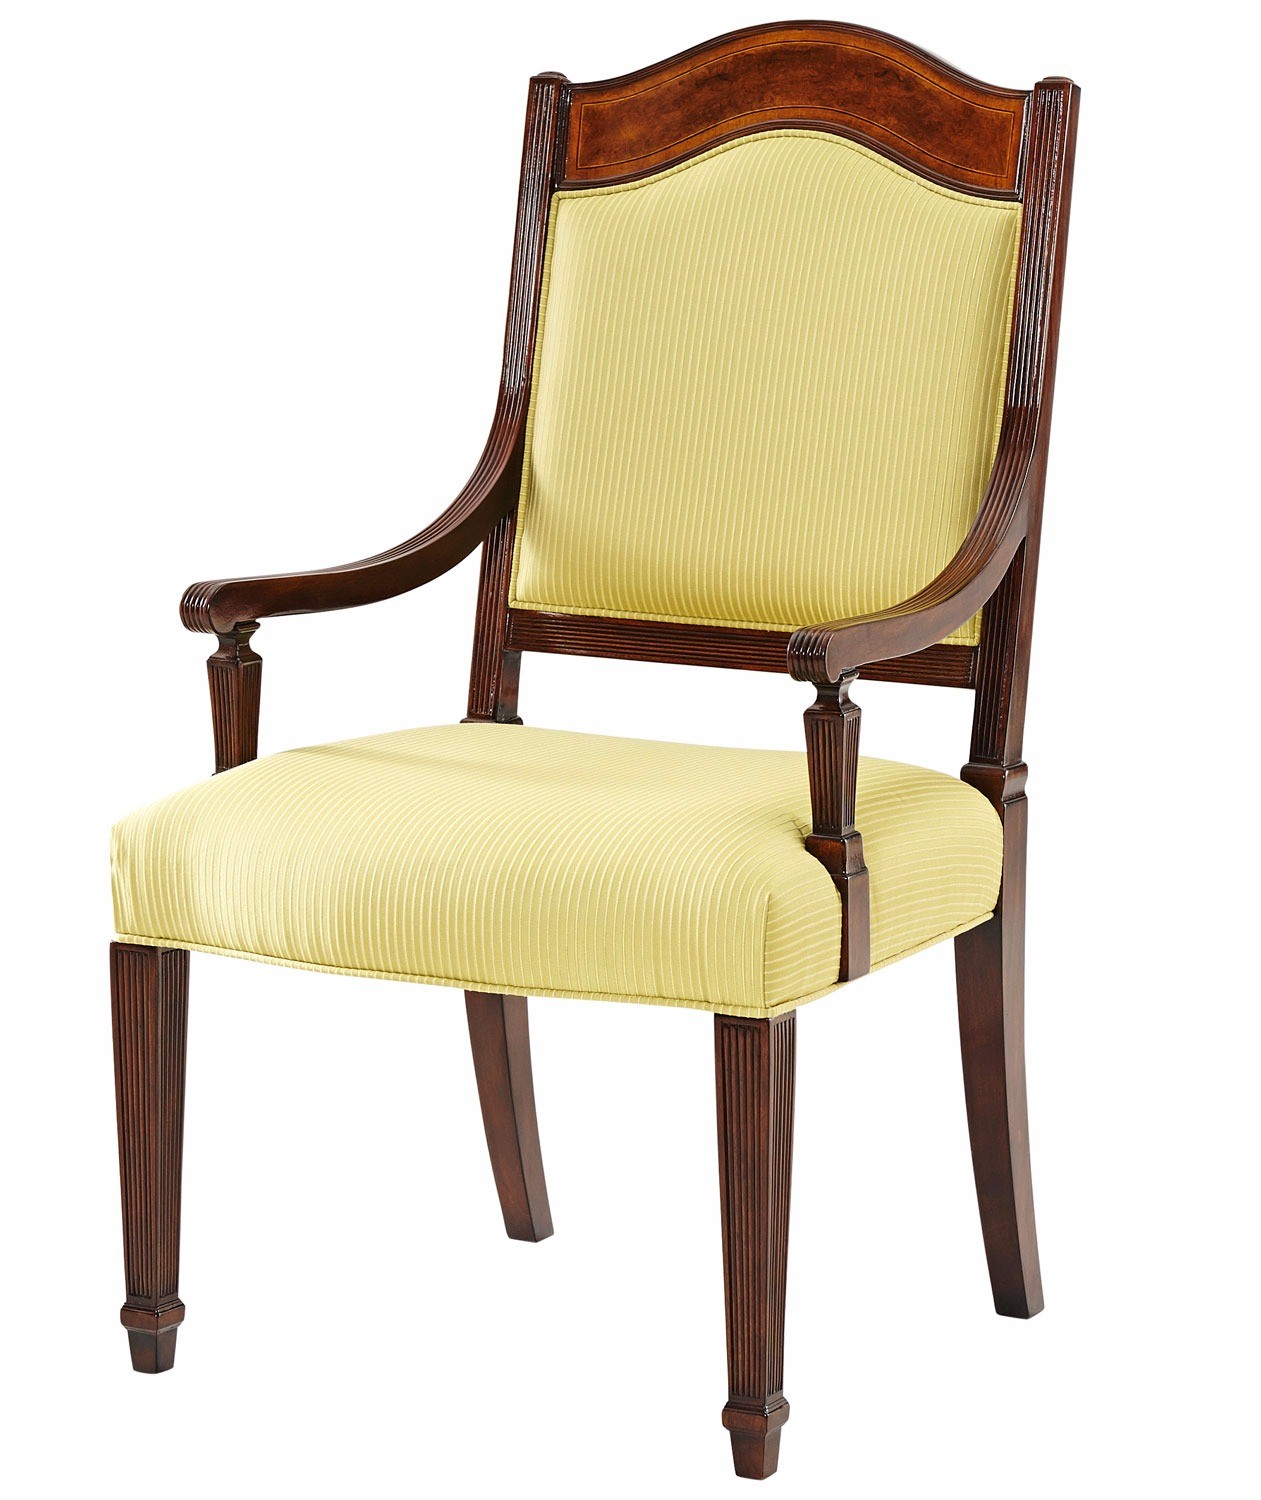 Armchair inspired by an original by Thomas Sheraton